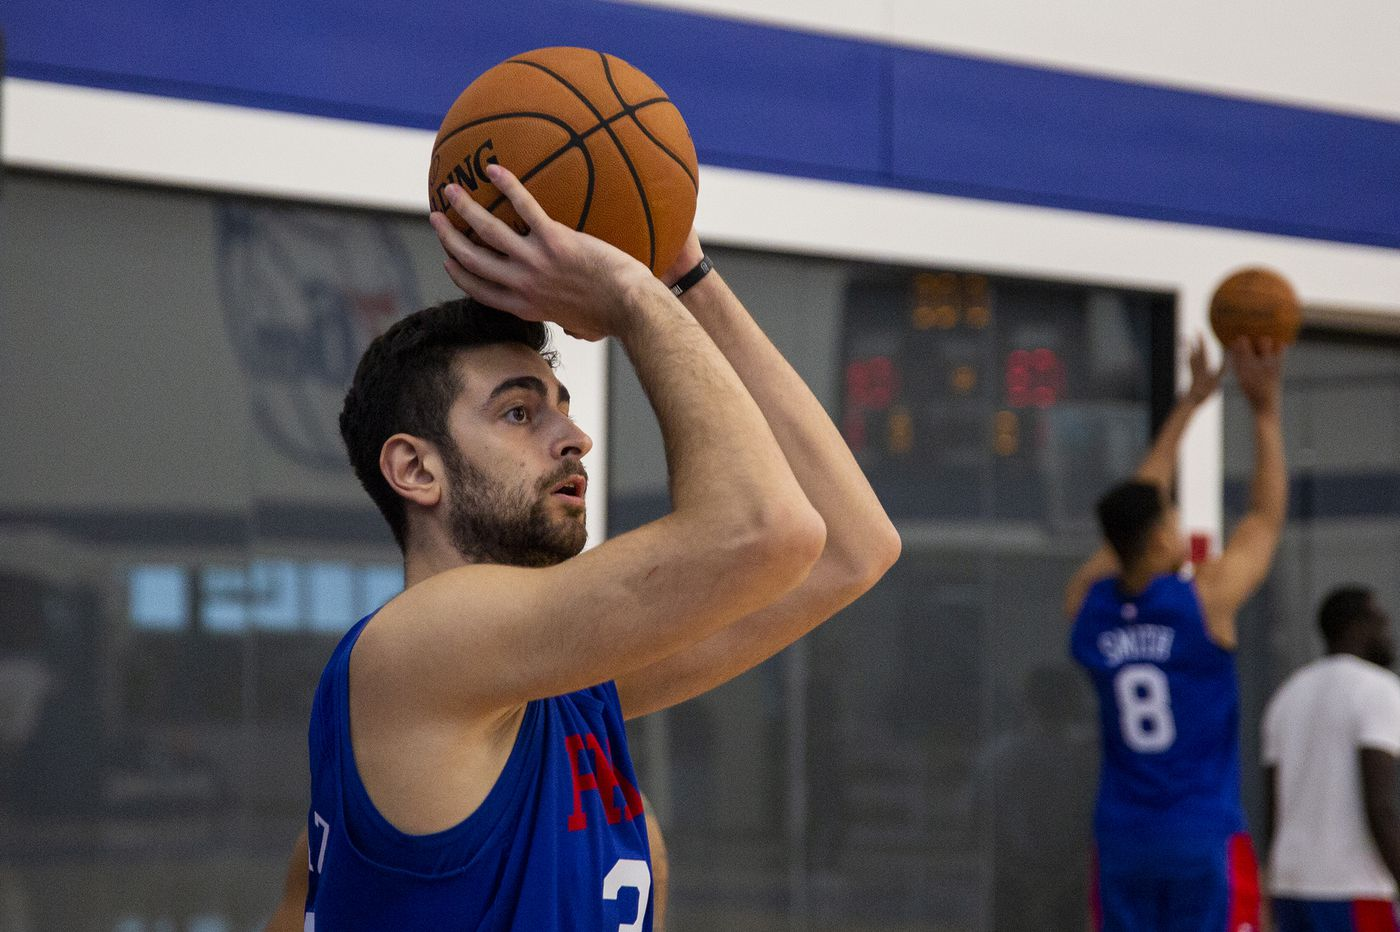 Furkan Korkmaz looks to make impact with Sixers, who end preseason with 112-93 loss to Wizards: 'I'm fighting for my jersey'